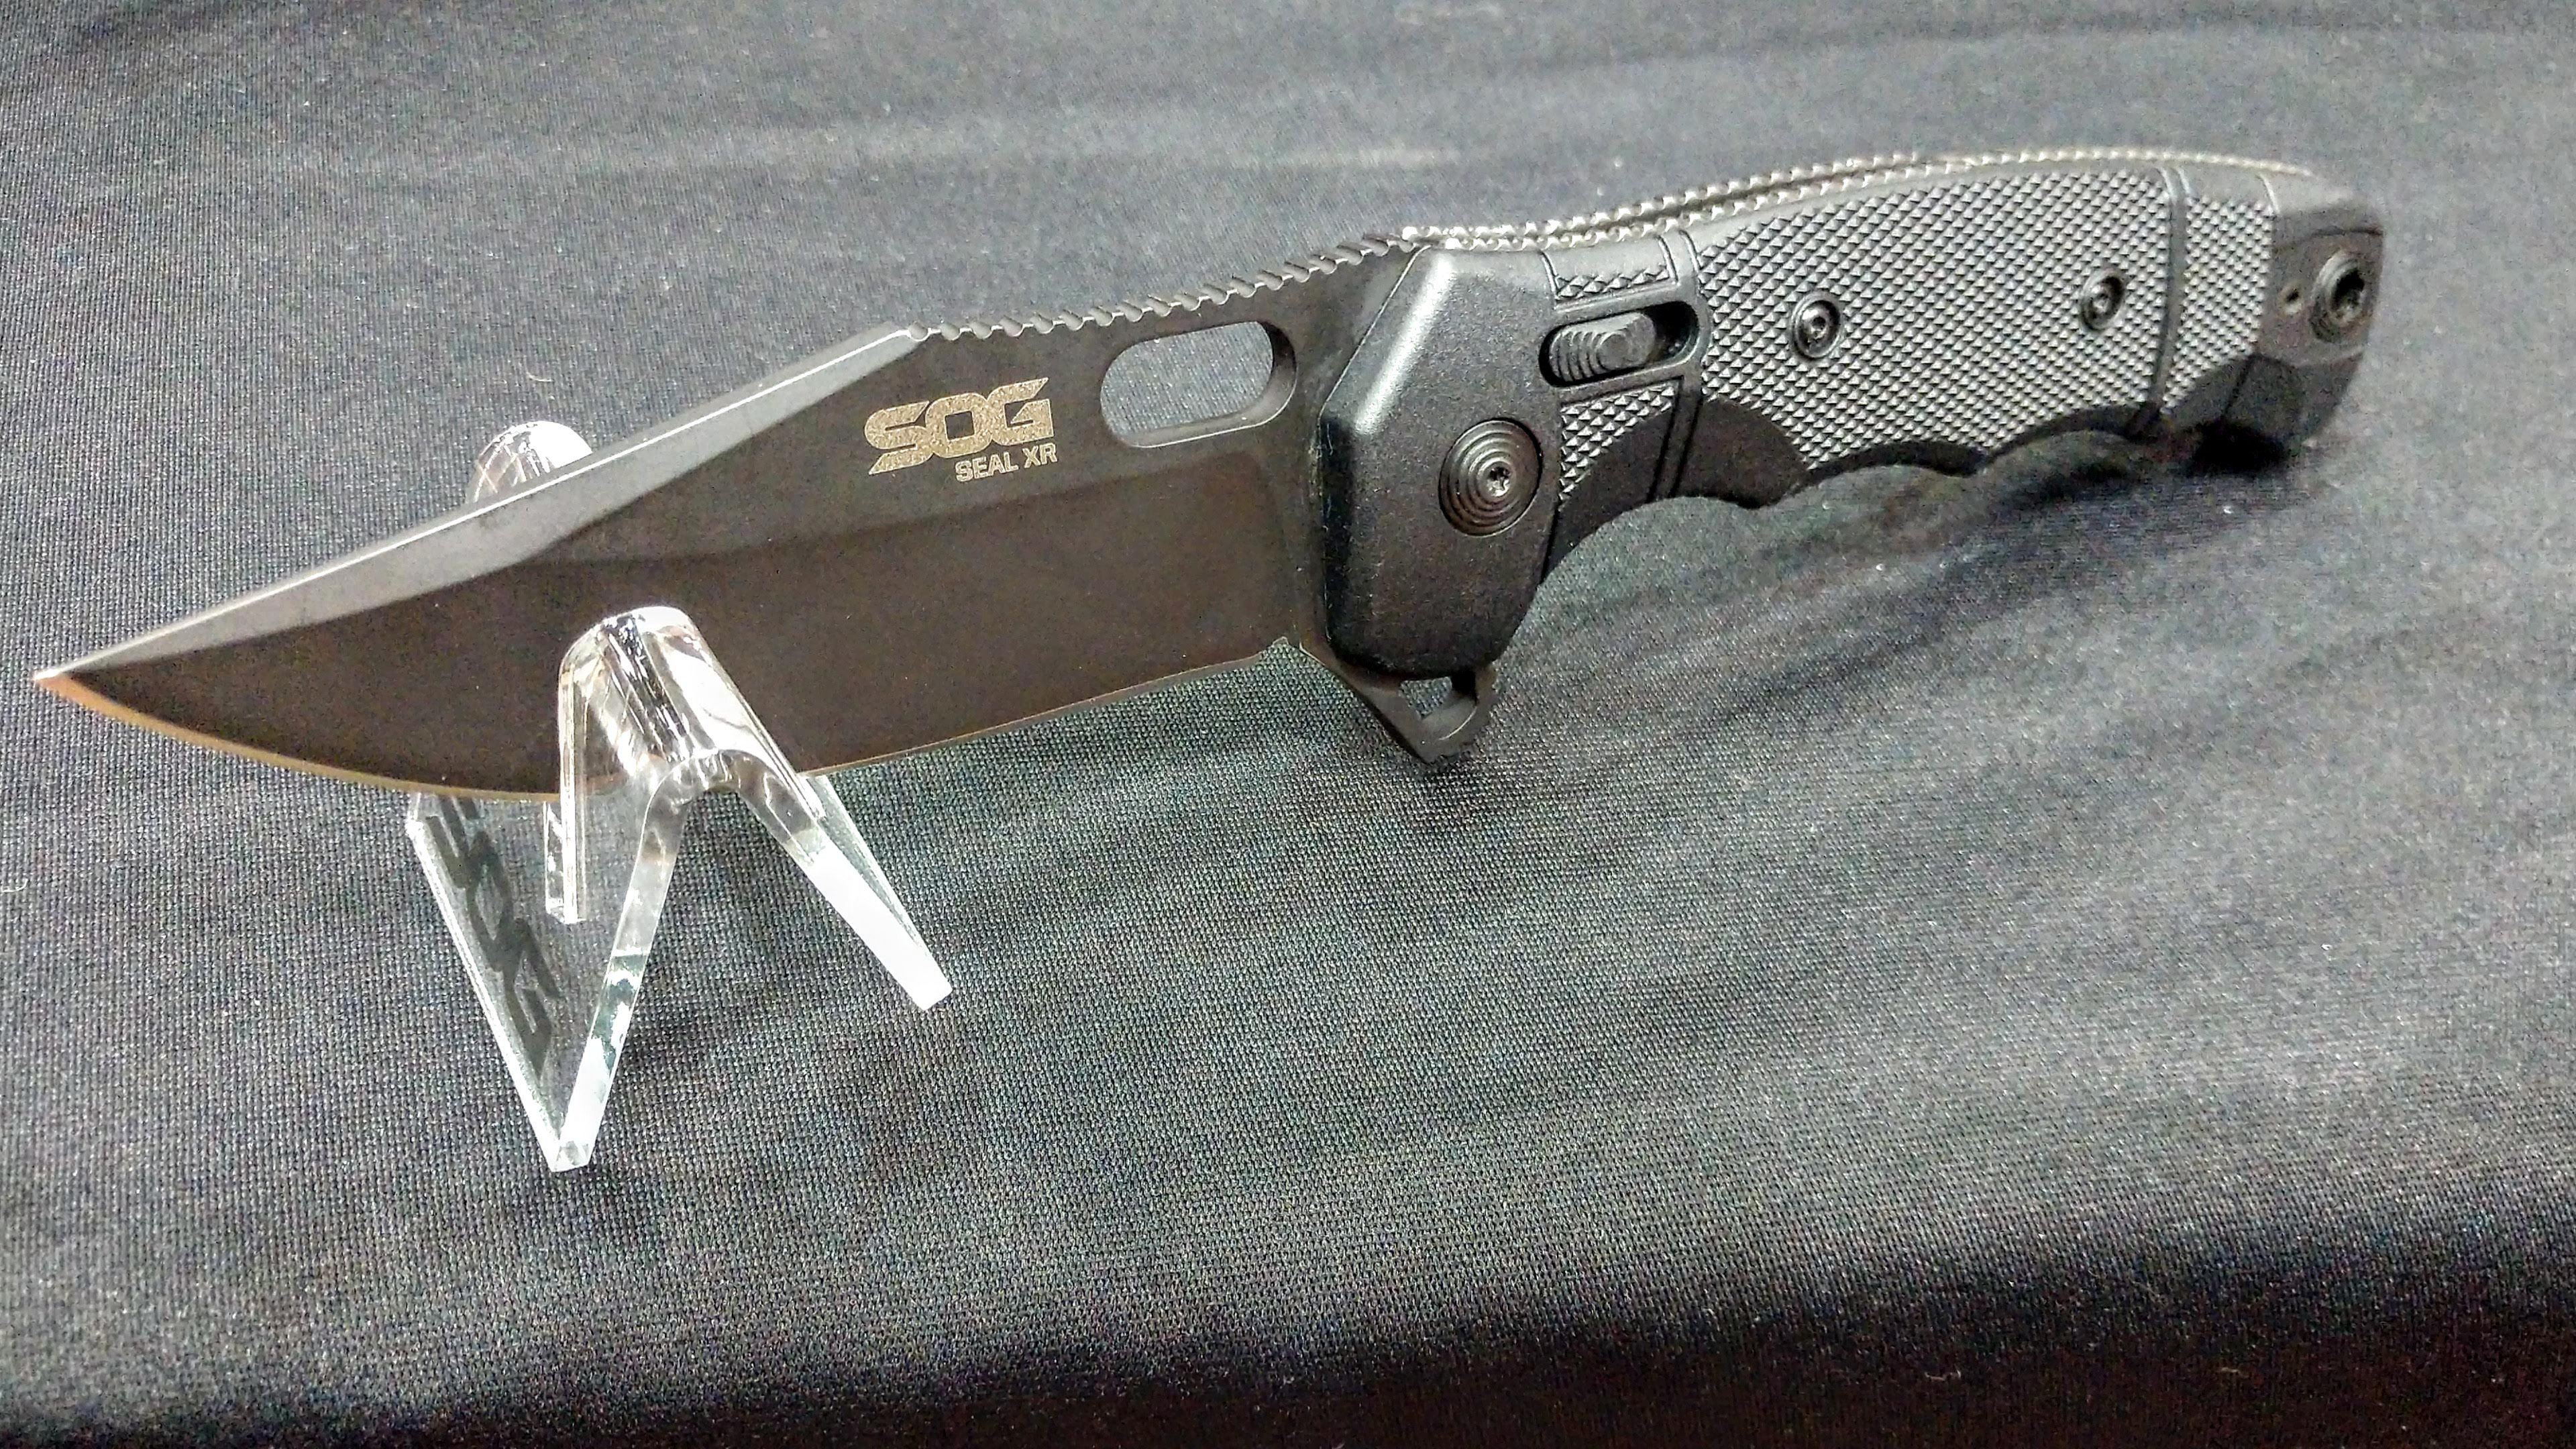 [TriggrCon 2019] SOG Knives Seal XR – Available in Oct '19